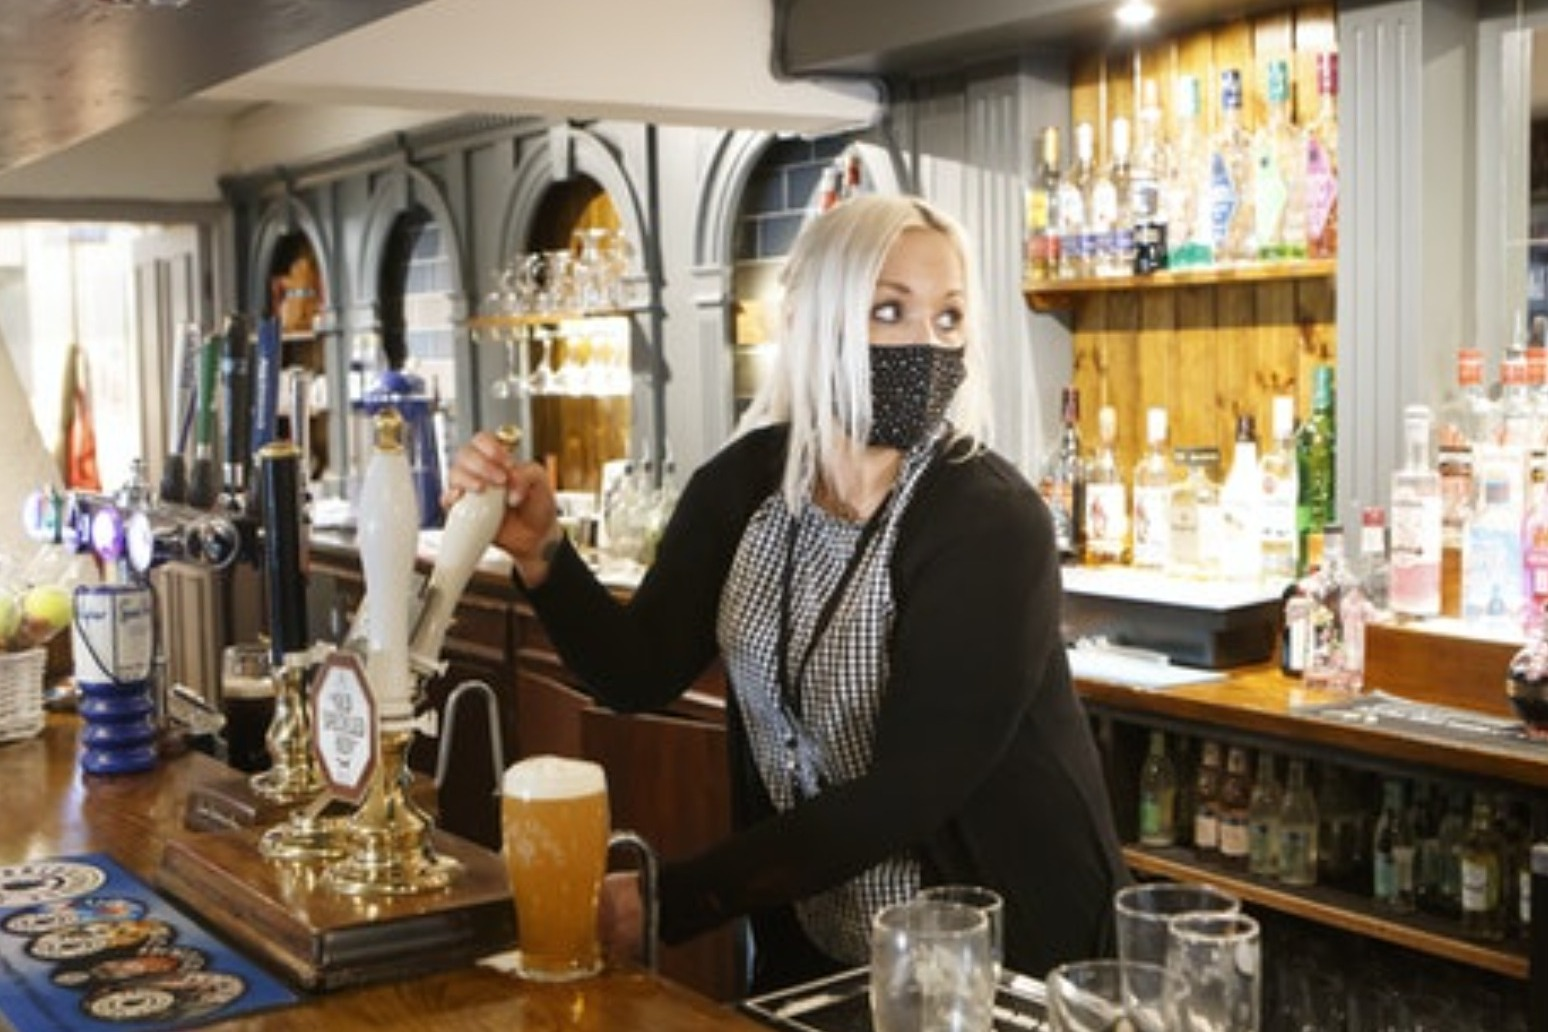 Pubs will 'never fully recover' from lockdown extension, Young's boss says